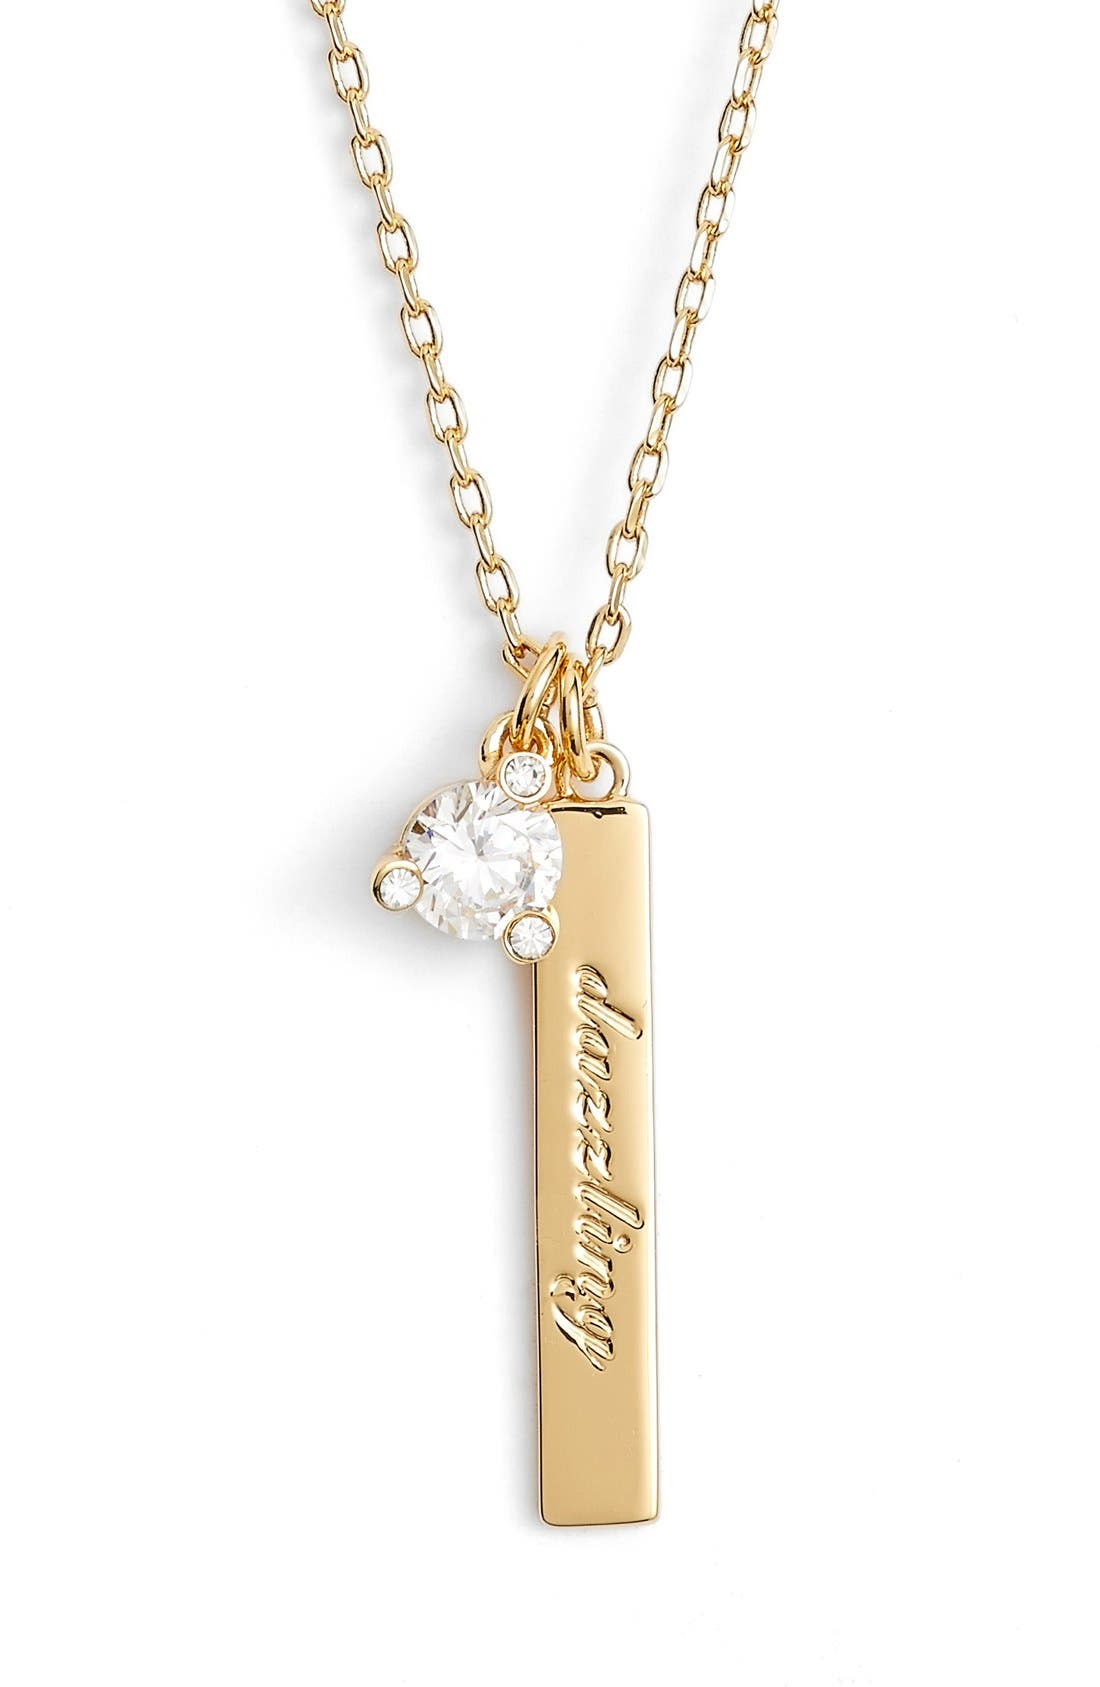 Alternate Image 1 Selected - kate spade new york born to be pendant necklace